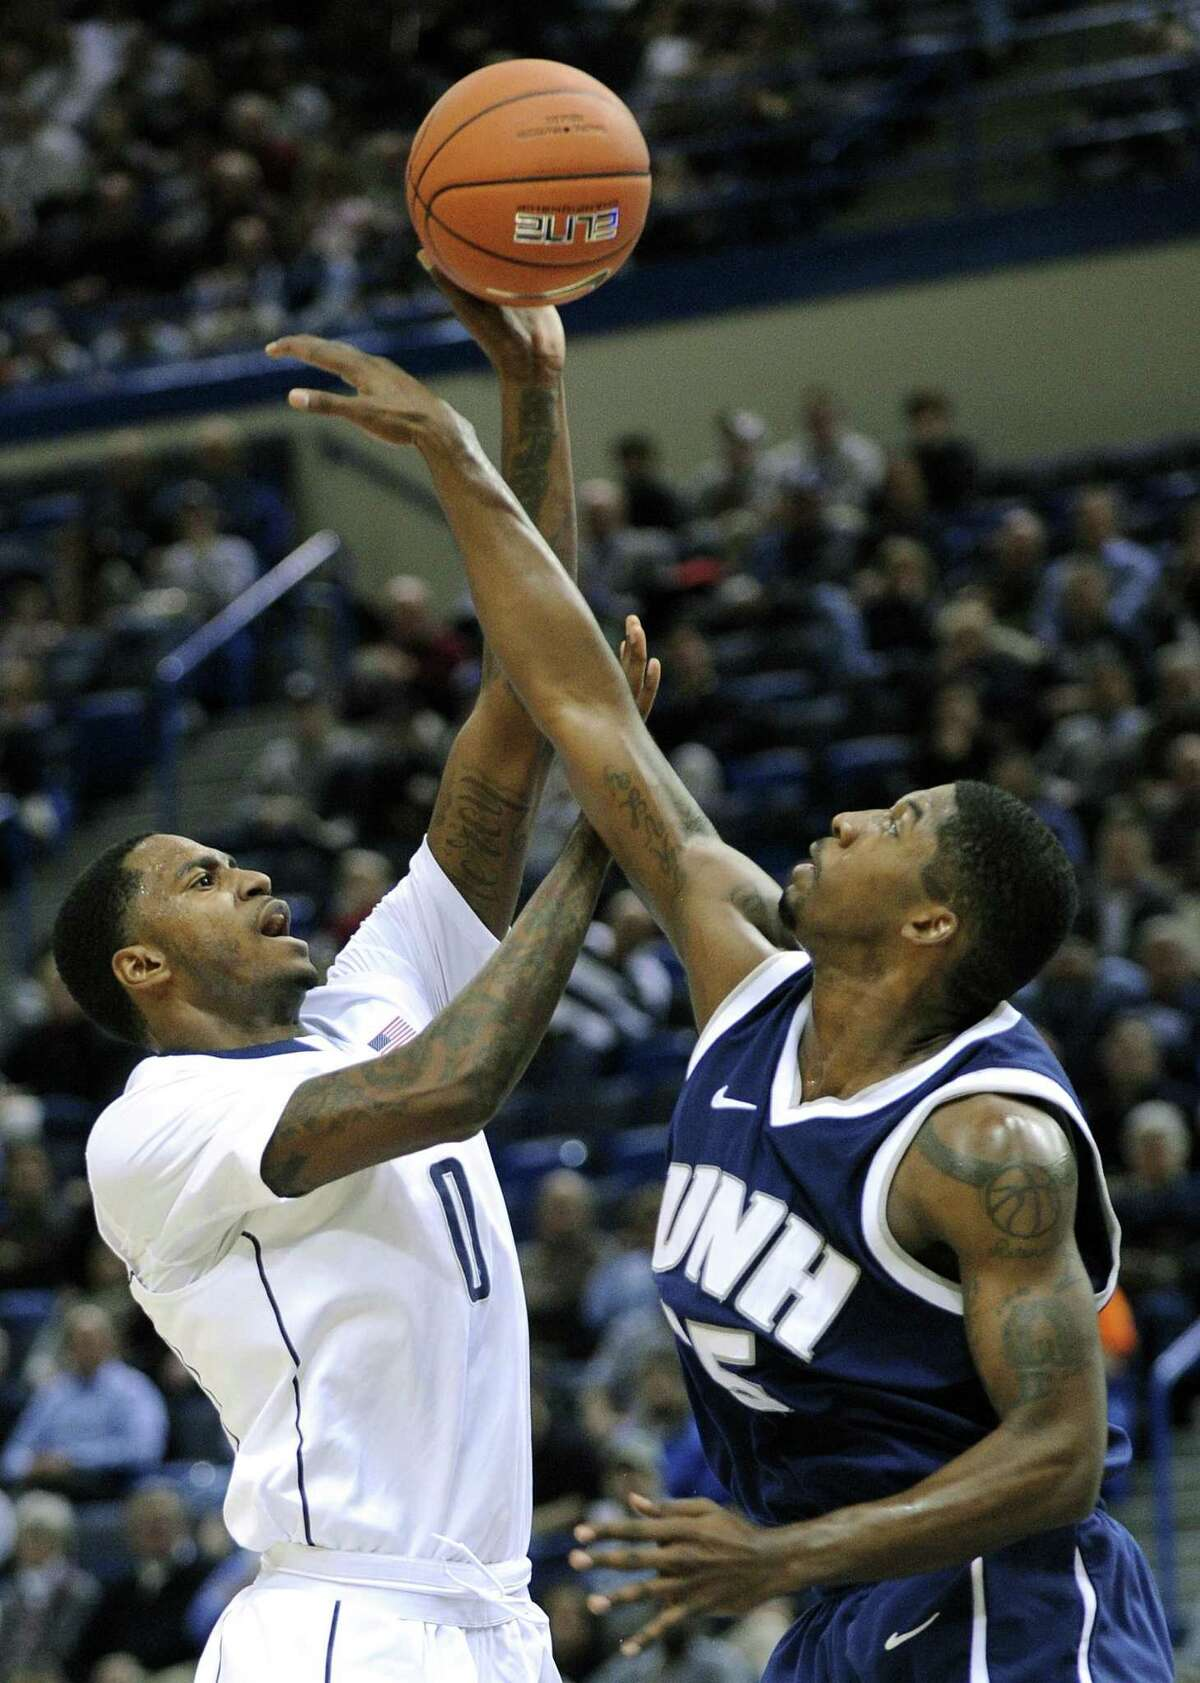 Connecticut's Phillip Nolan, left, shoots over New Hampshire's Ferg Myrick during the first half Thursday. (AP Photo/Fred Beckham)